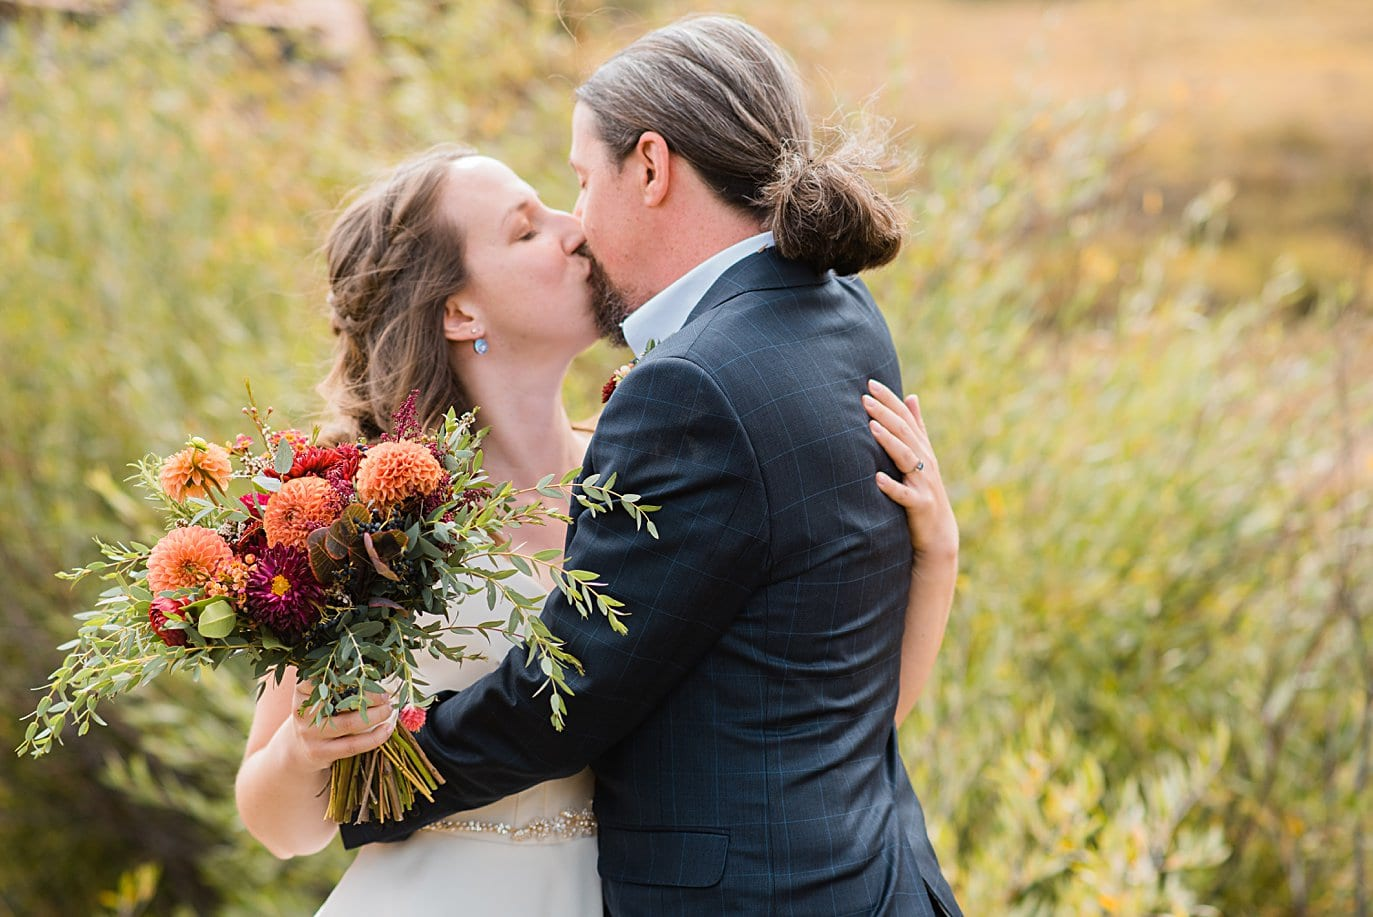 first look between bride and groom at Crested Butte Elopement by Crested Butte elopement photographer Jennie Crate